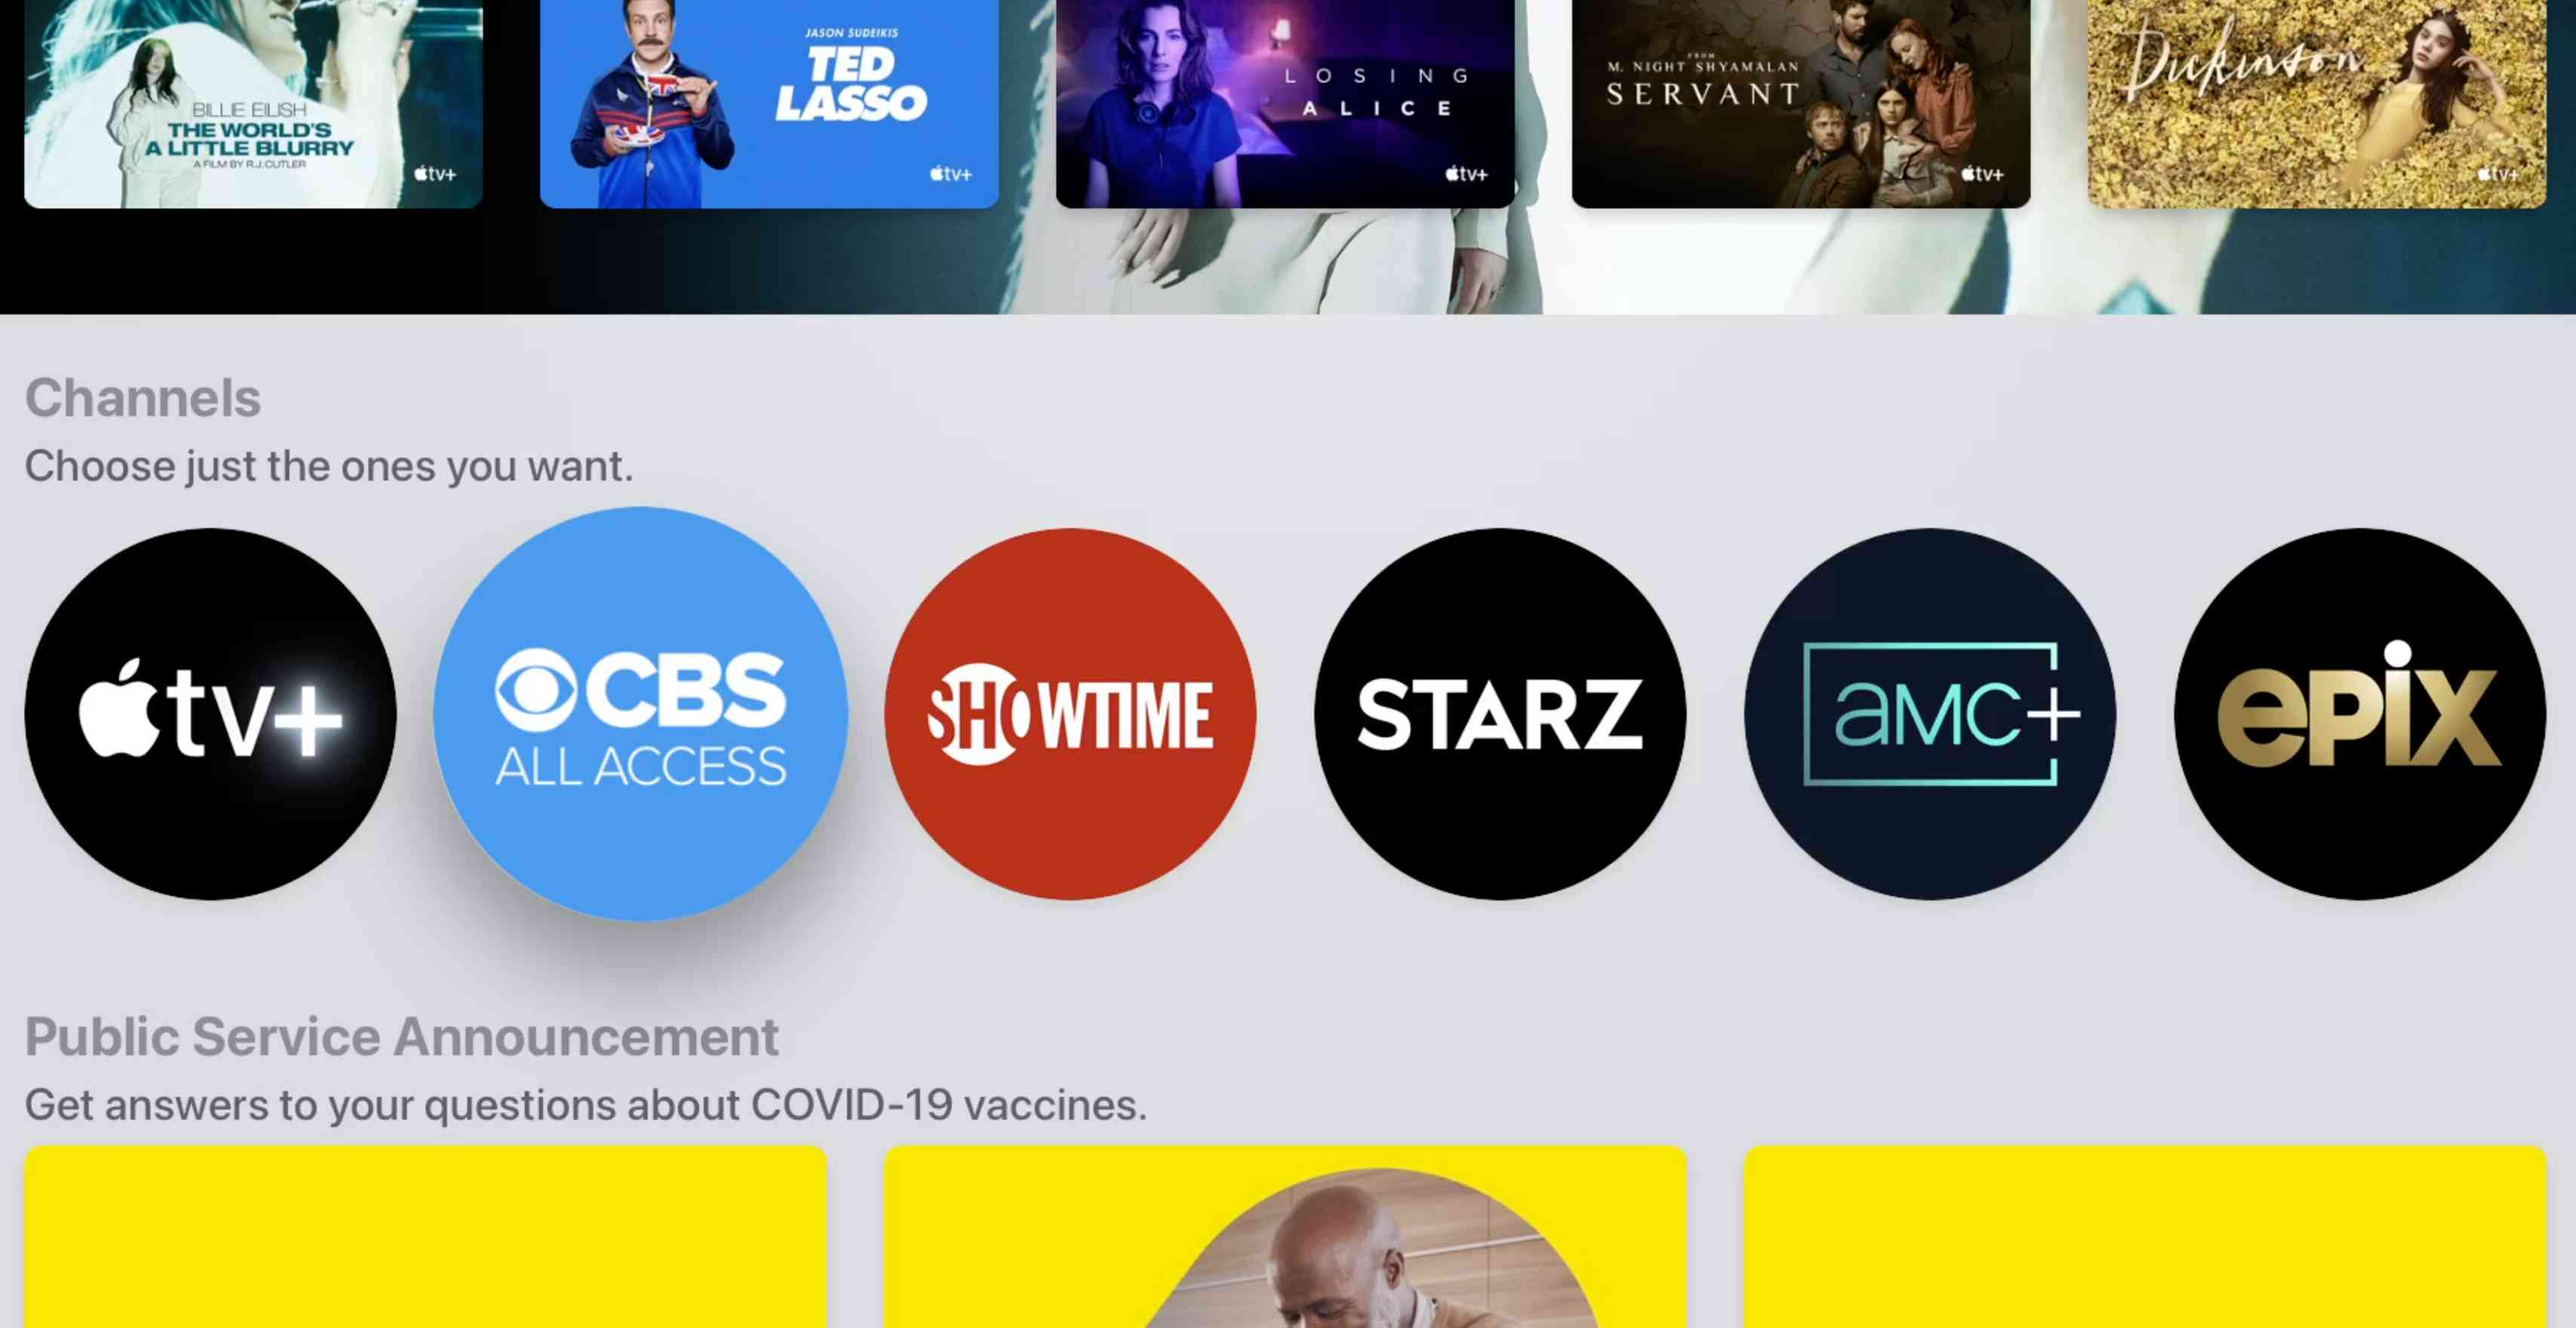 Available Channels in Apple TV app